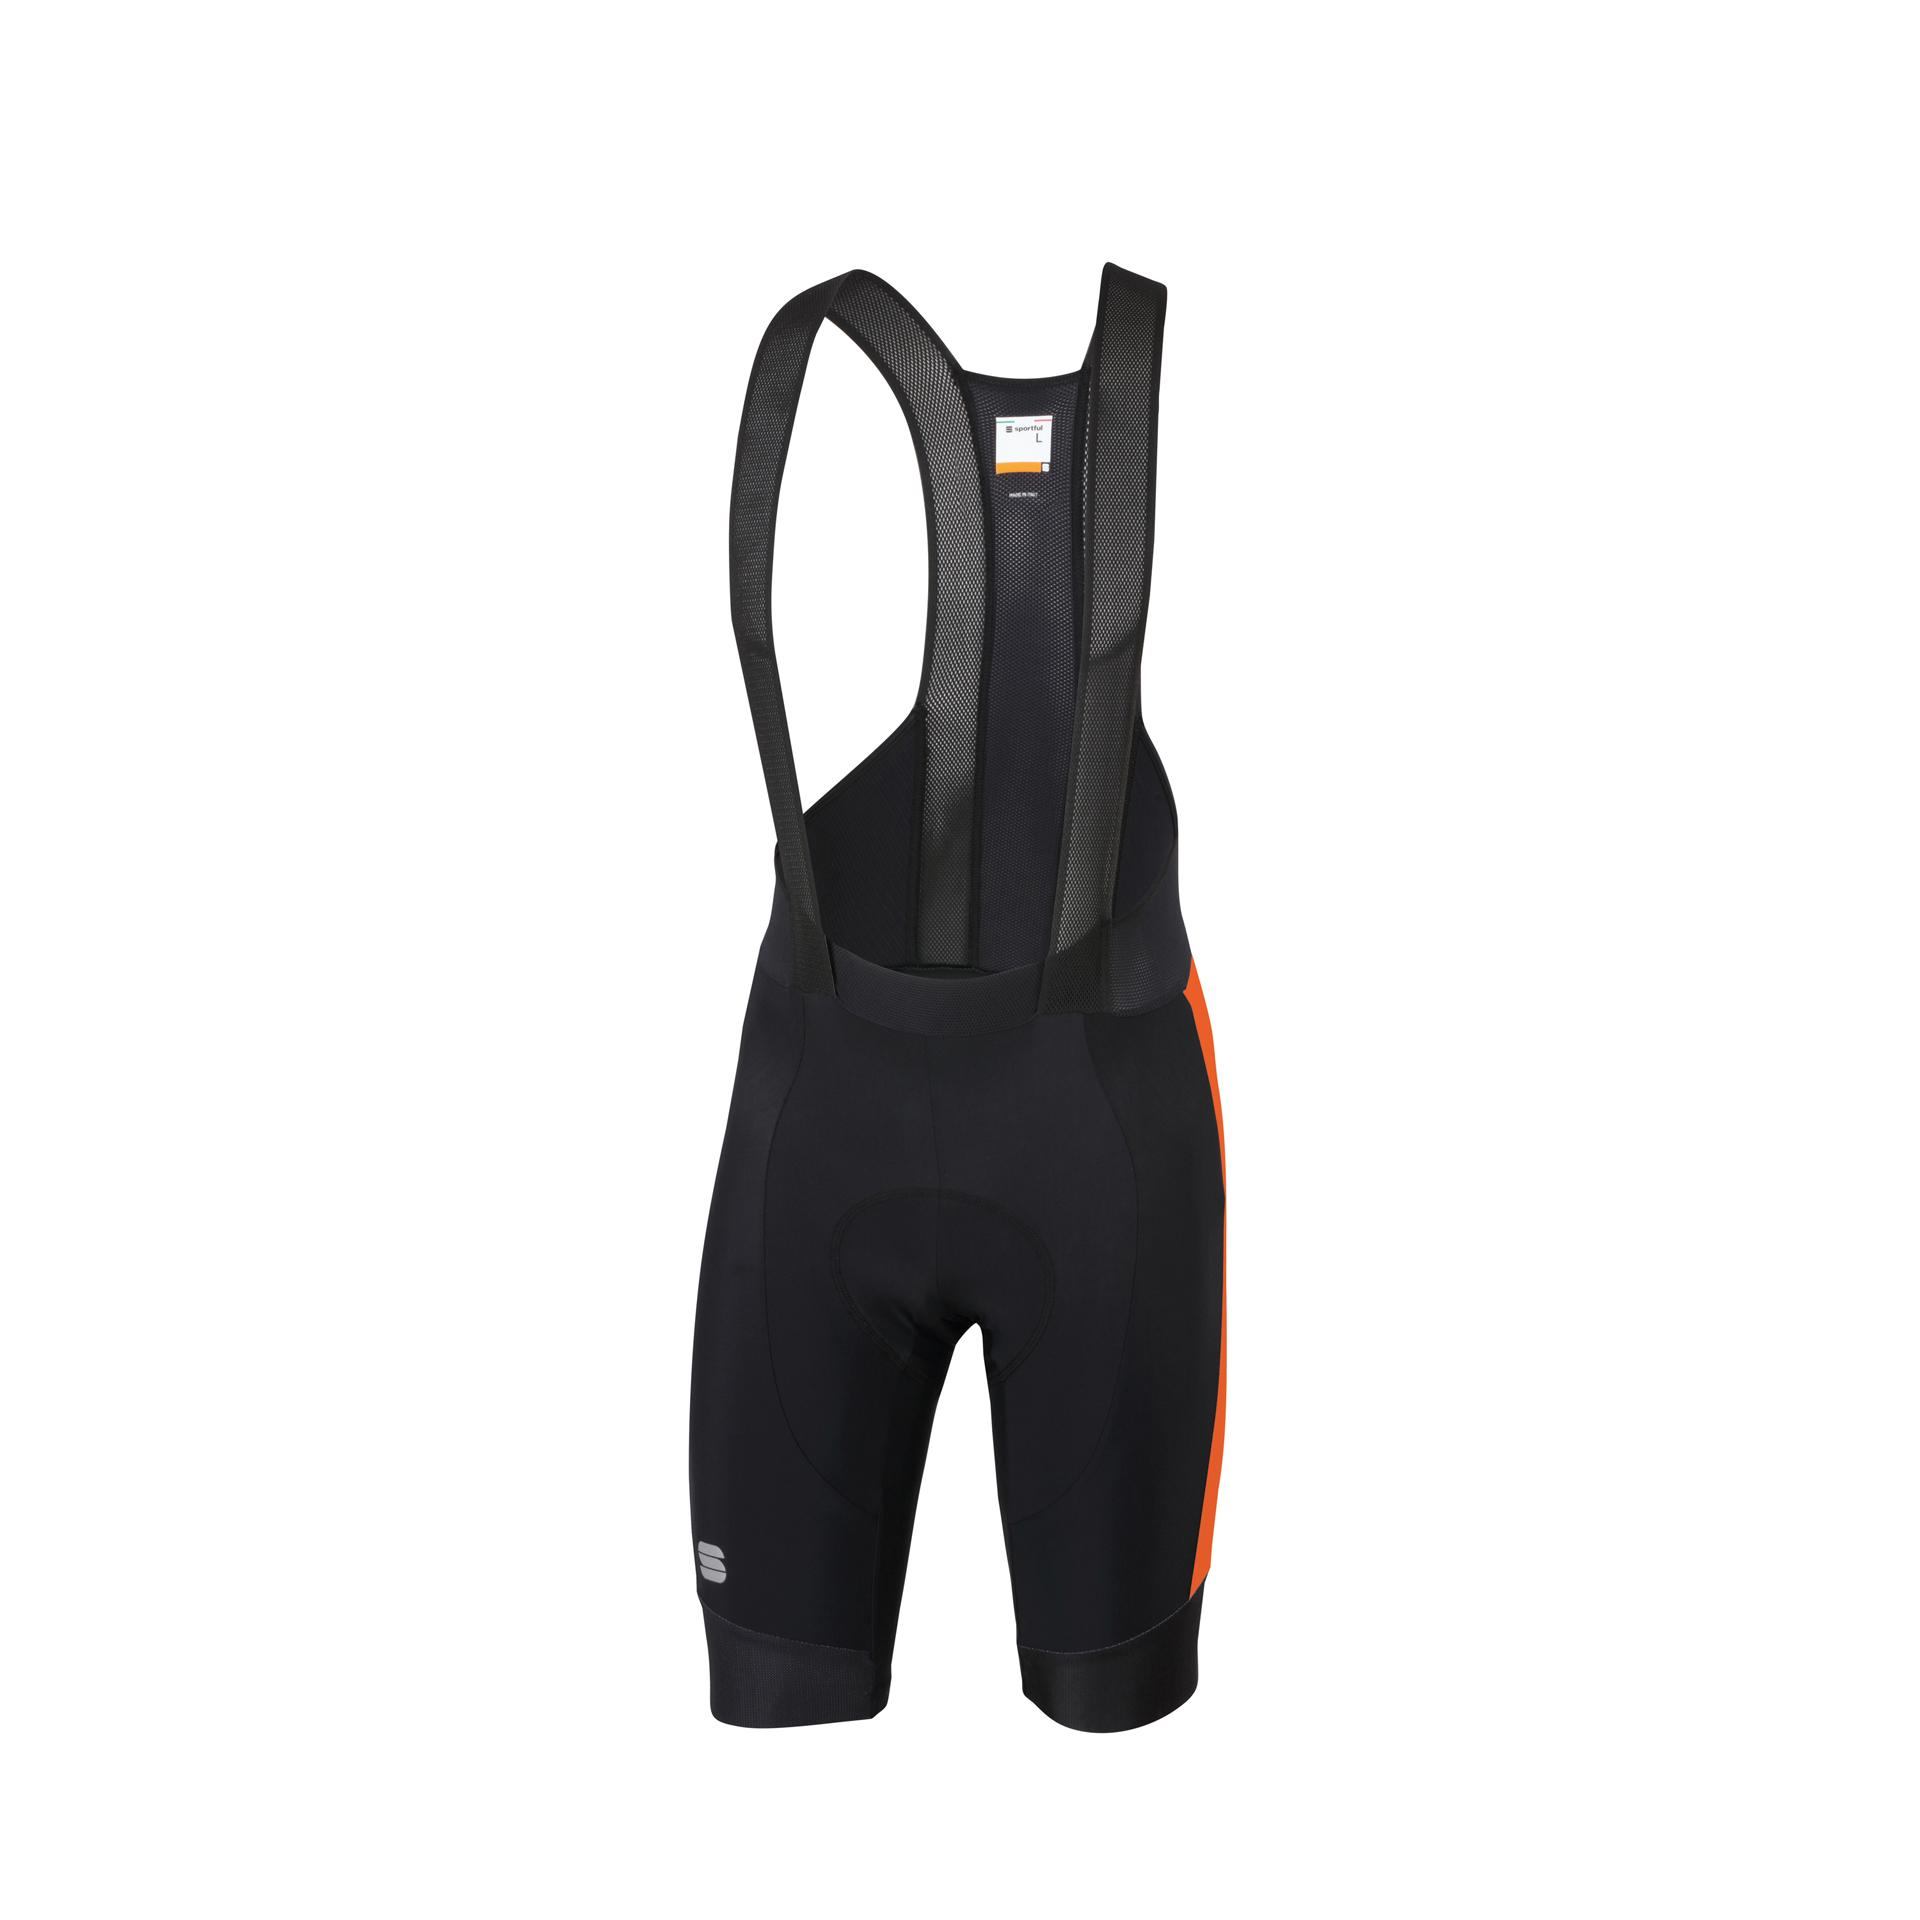 Afbeelding Sportful Fietsbroek met bretels - koersbroek Heren Zwart Oranje / SF Gts  Bibshort-Black/Orange Sdr